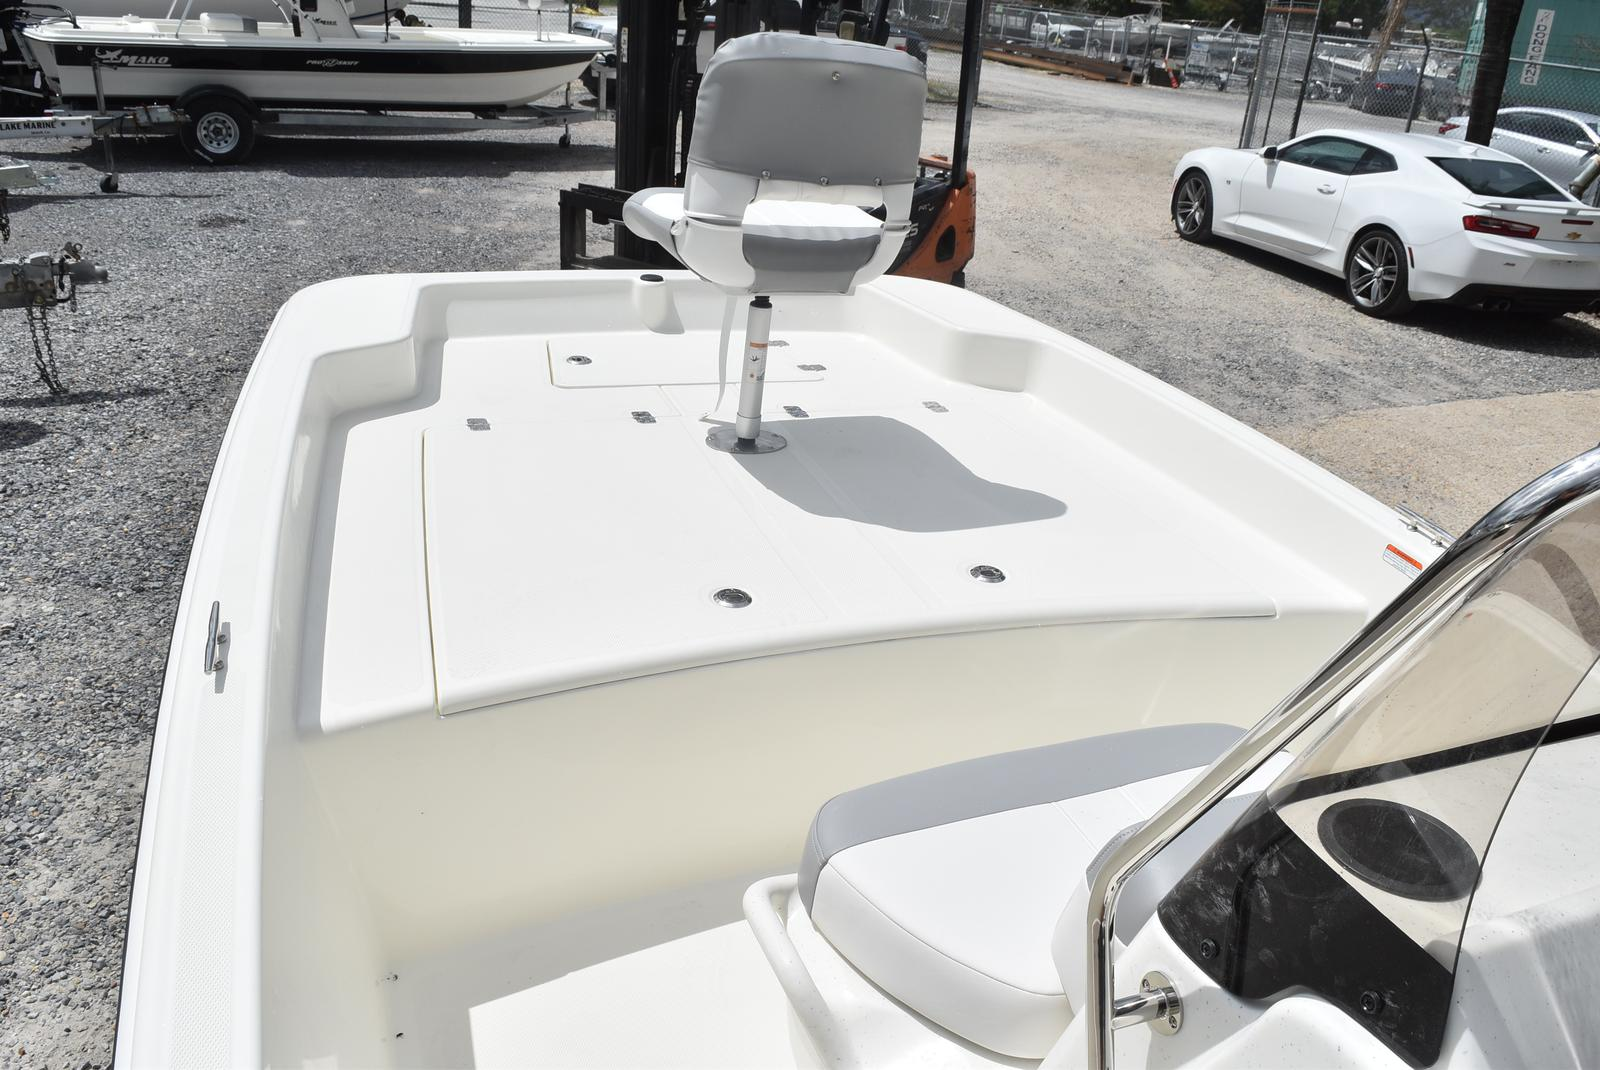 2020 Mako boat for sale, model of the boat is Pro Skiff 17, 75 ELPT & Image # 466 of 702